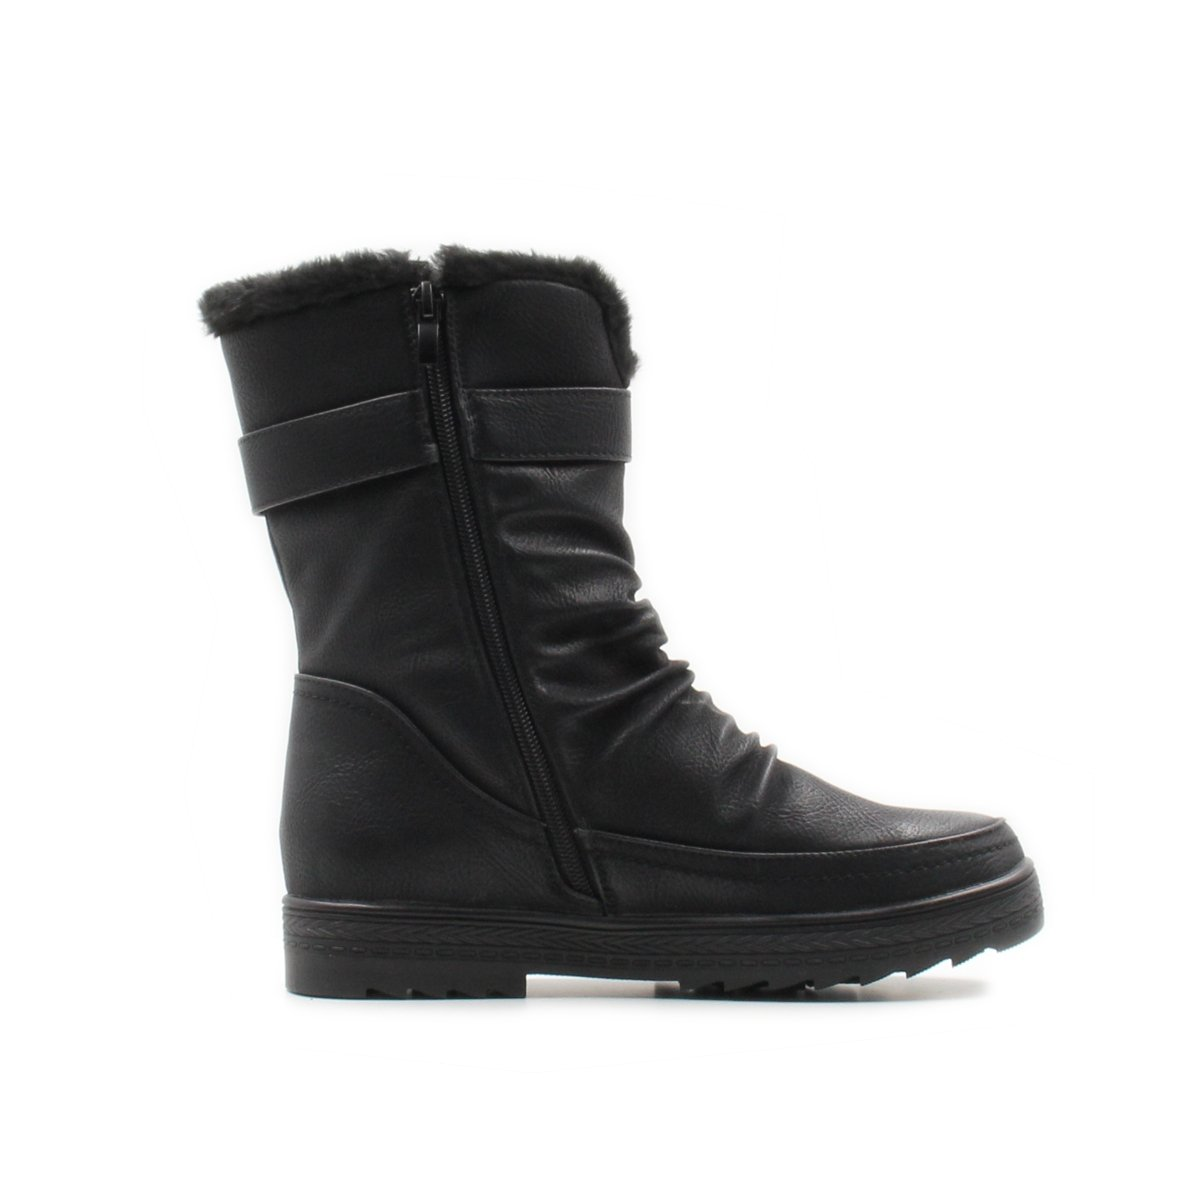 Stylish & Comfort Women's Slouchy Mid-Calf Fur Lined Interior Winter Boots with Side Zipper Warm Shoes (10, Black)